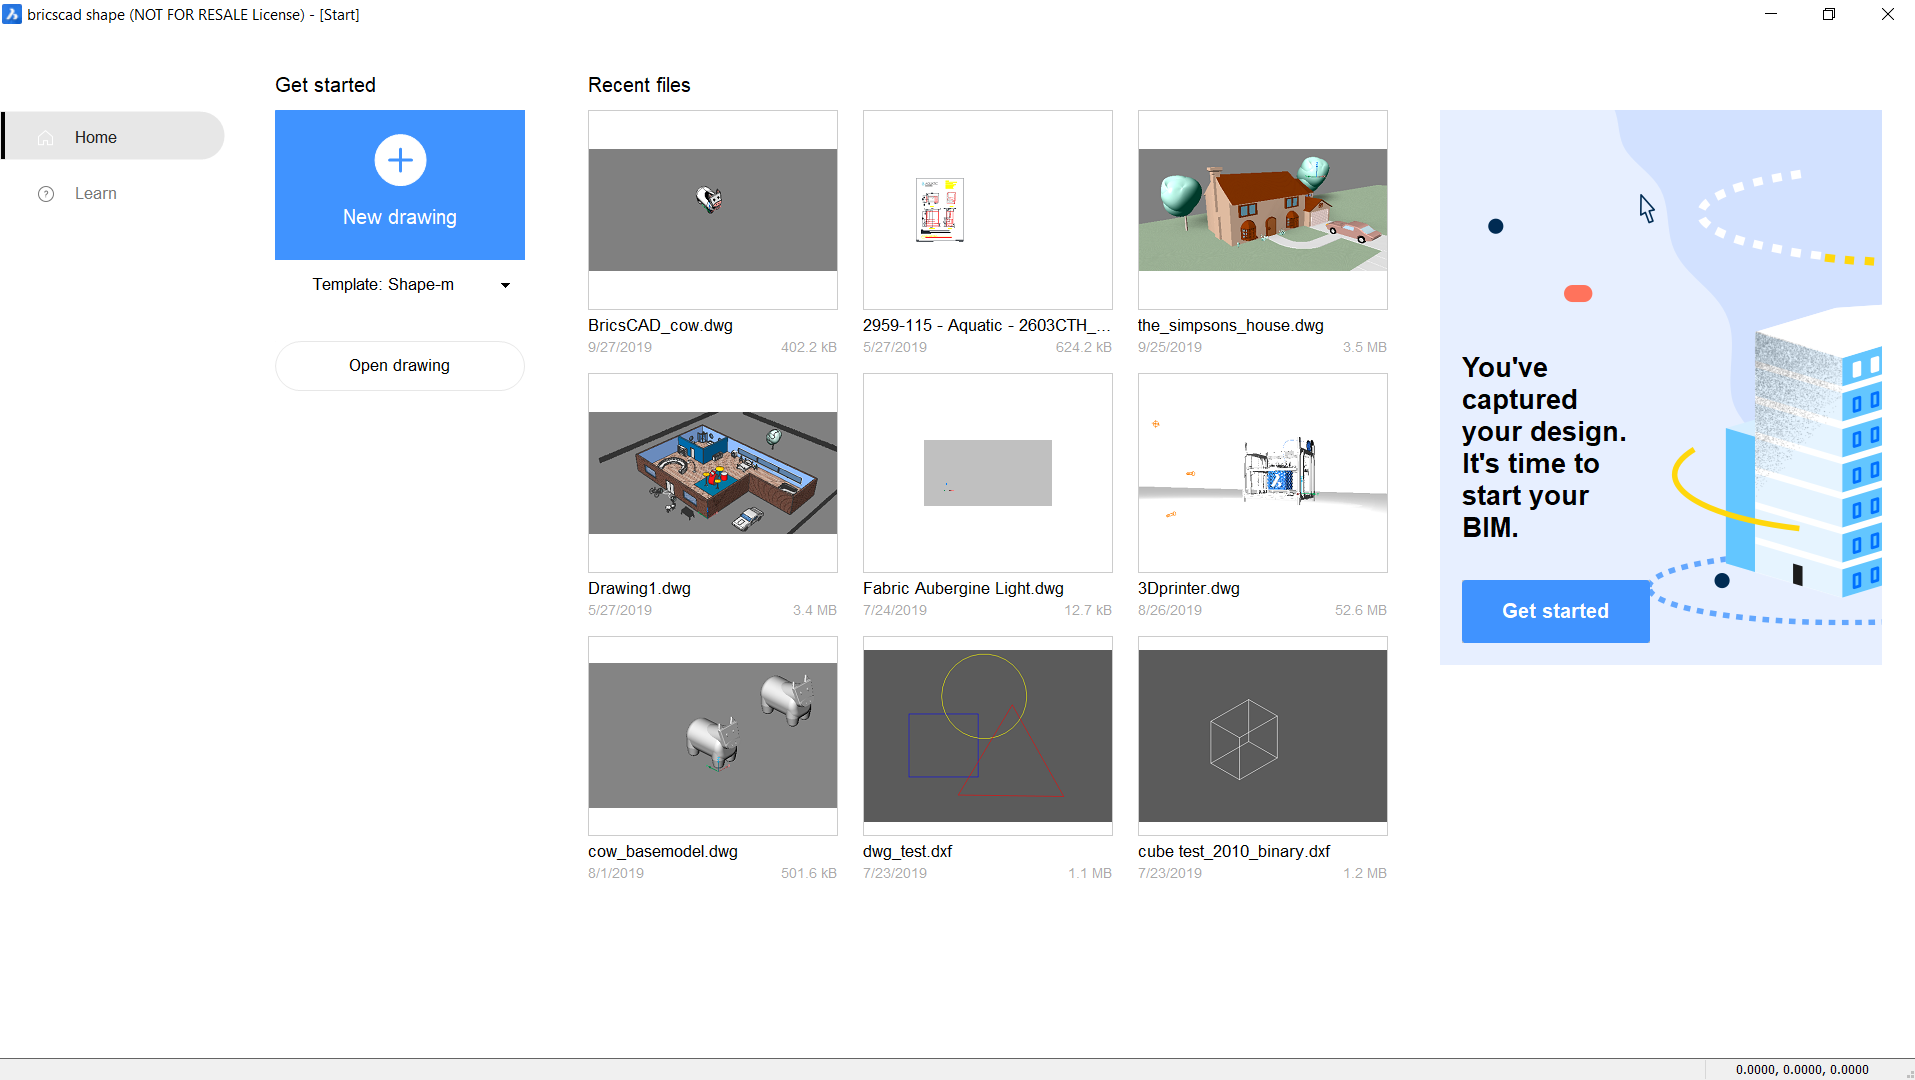 BricsCAD Shape Get started page